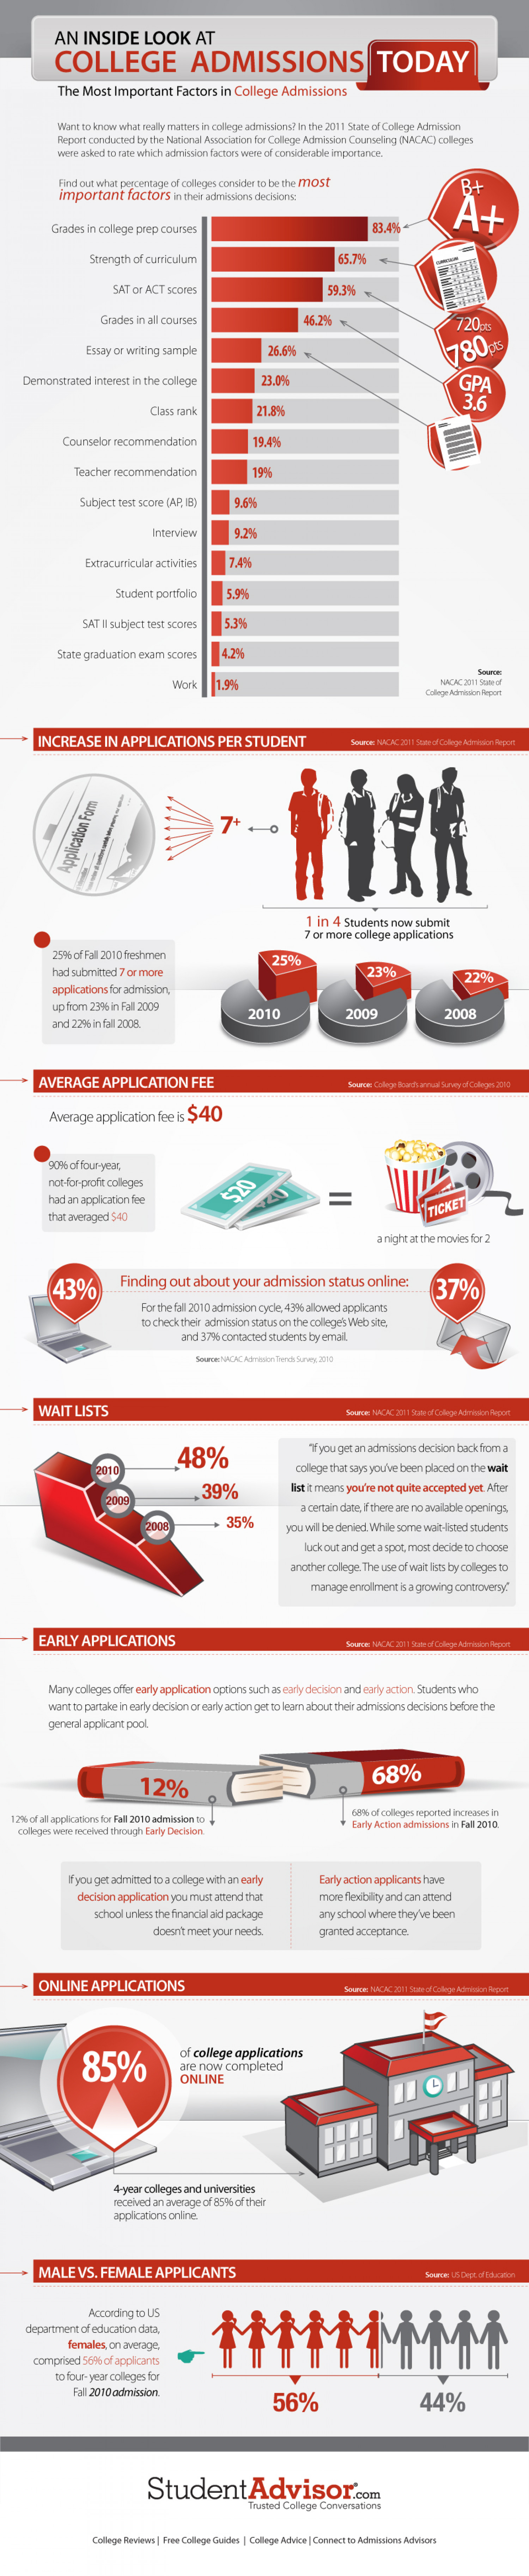 College Admissions Statistics 2011: An Inside Look Infographic